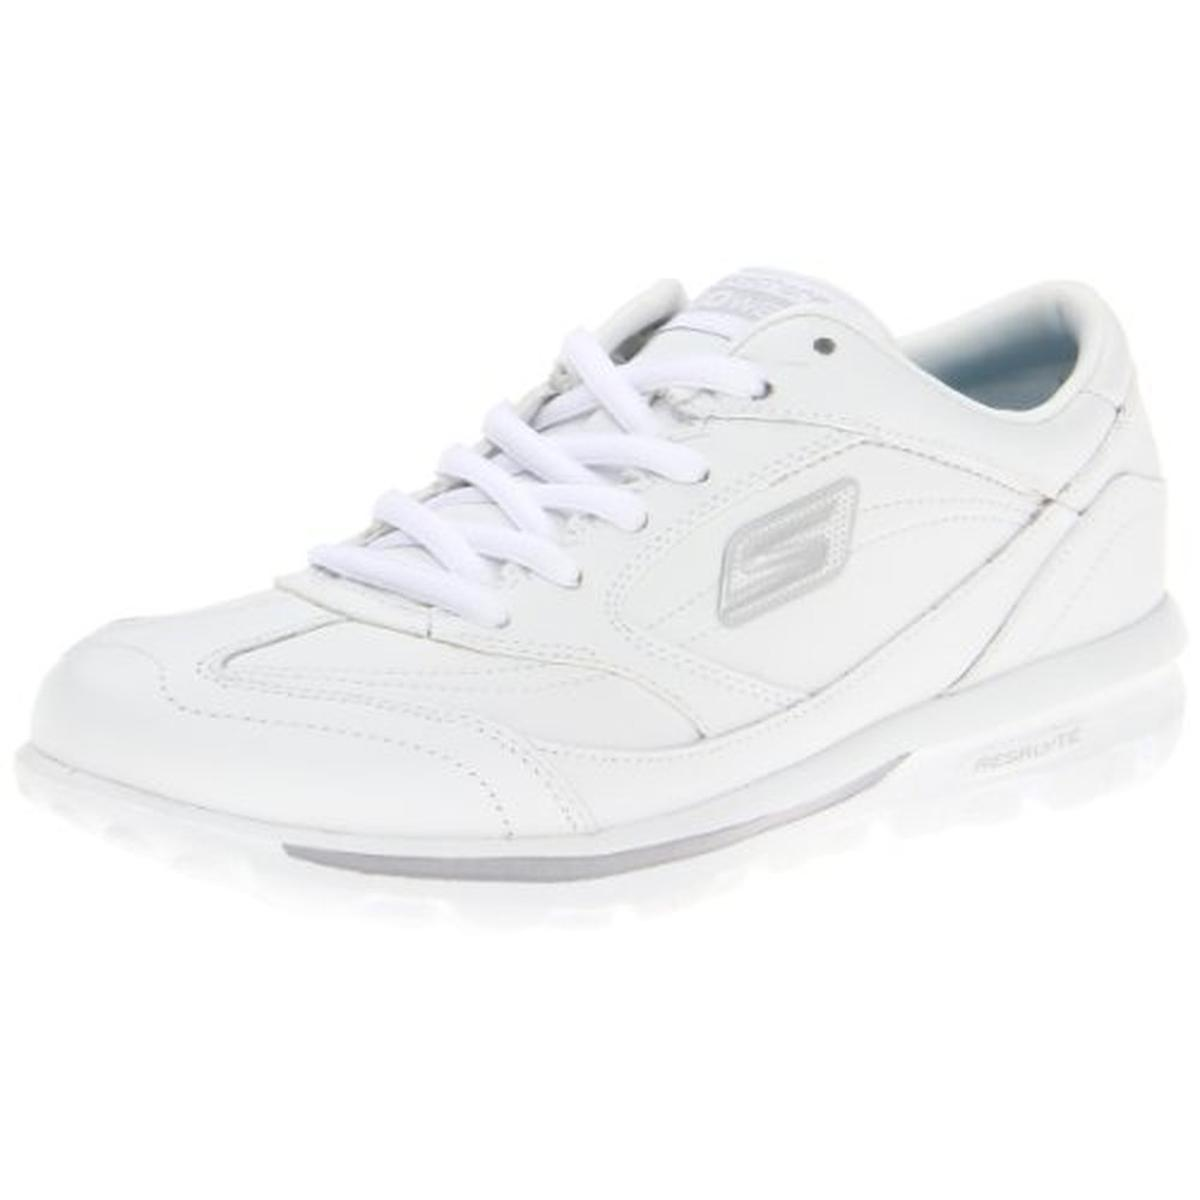 skechers 6334 womens white leather athletic walking shoes